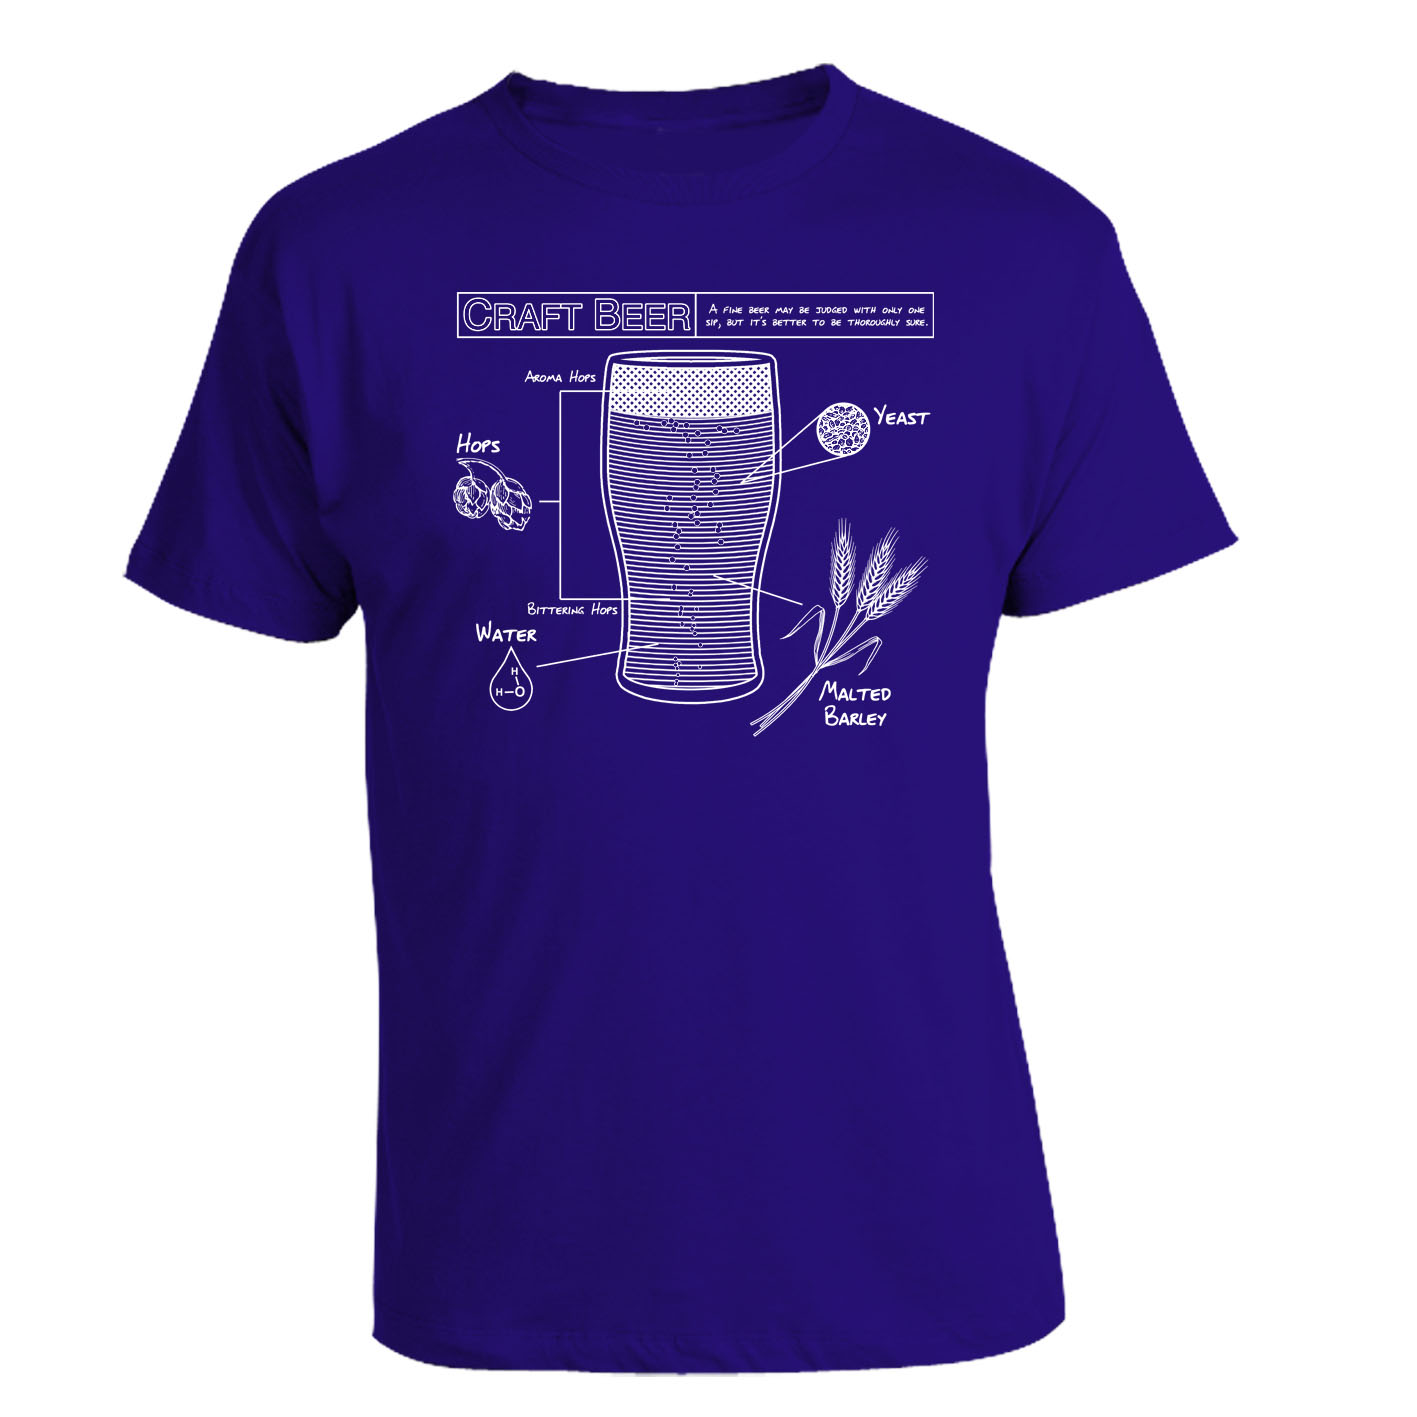 Craft beer blueprint t shirt for Craft brewery t shirts